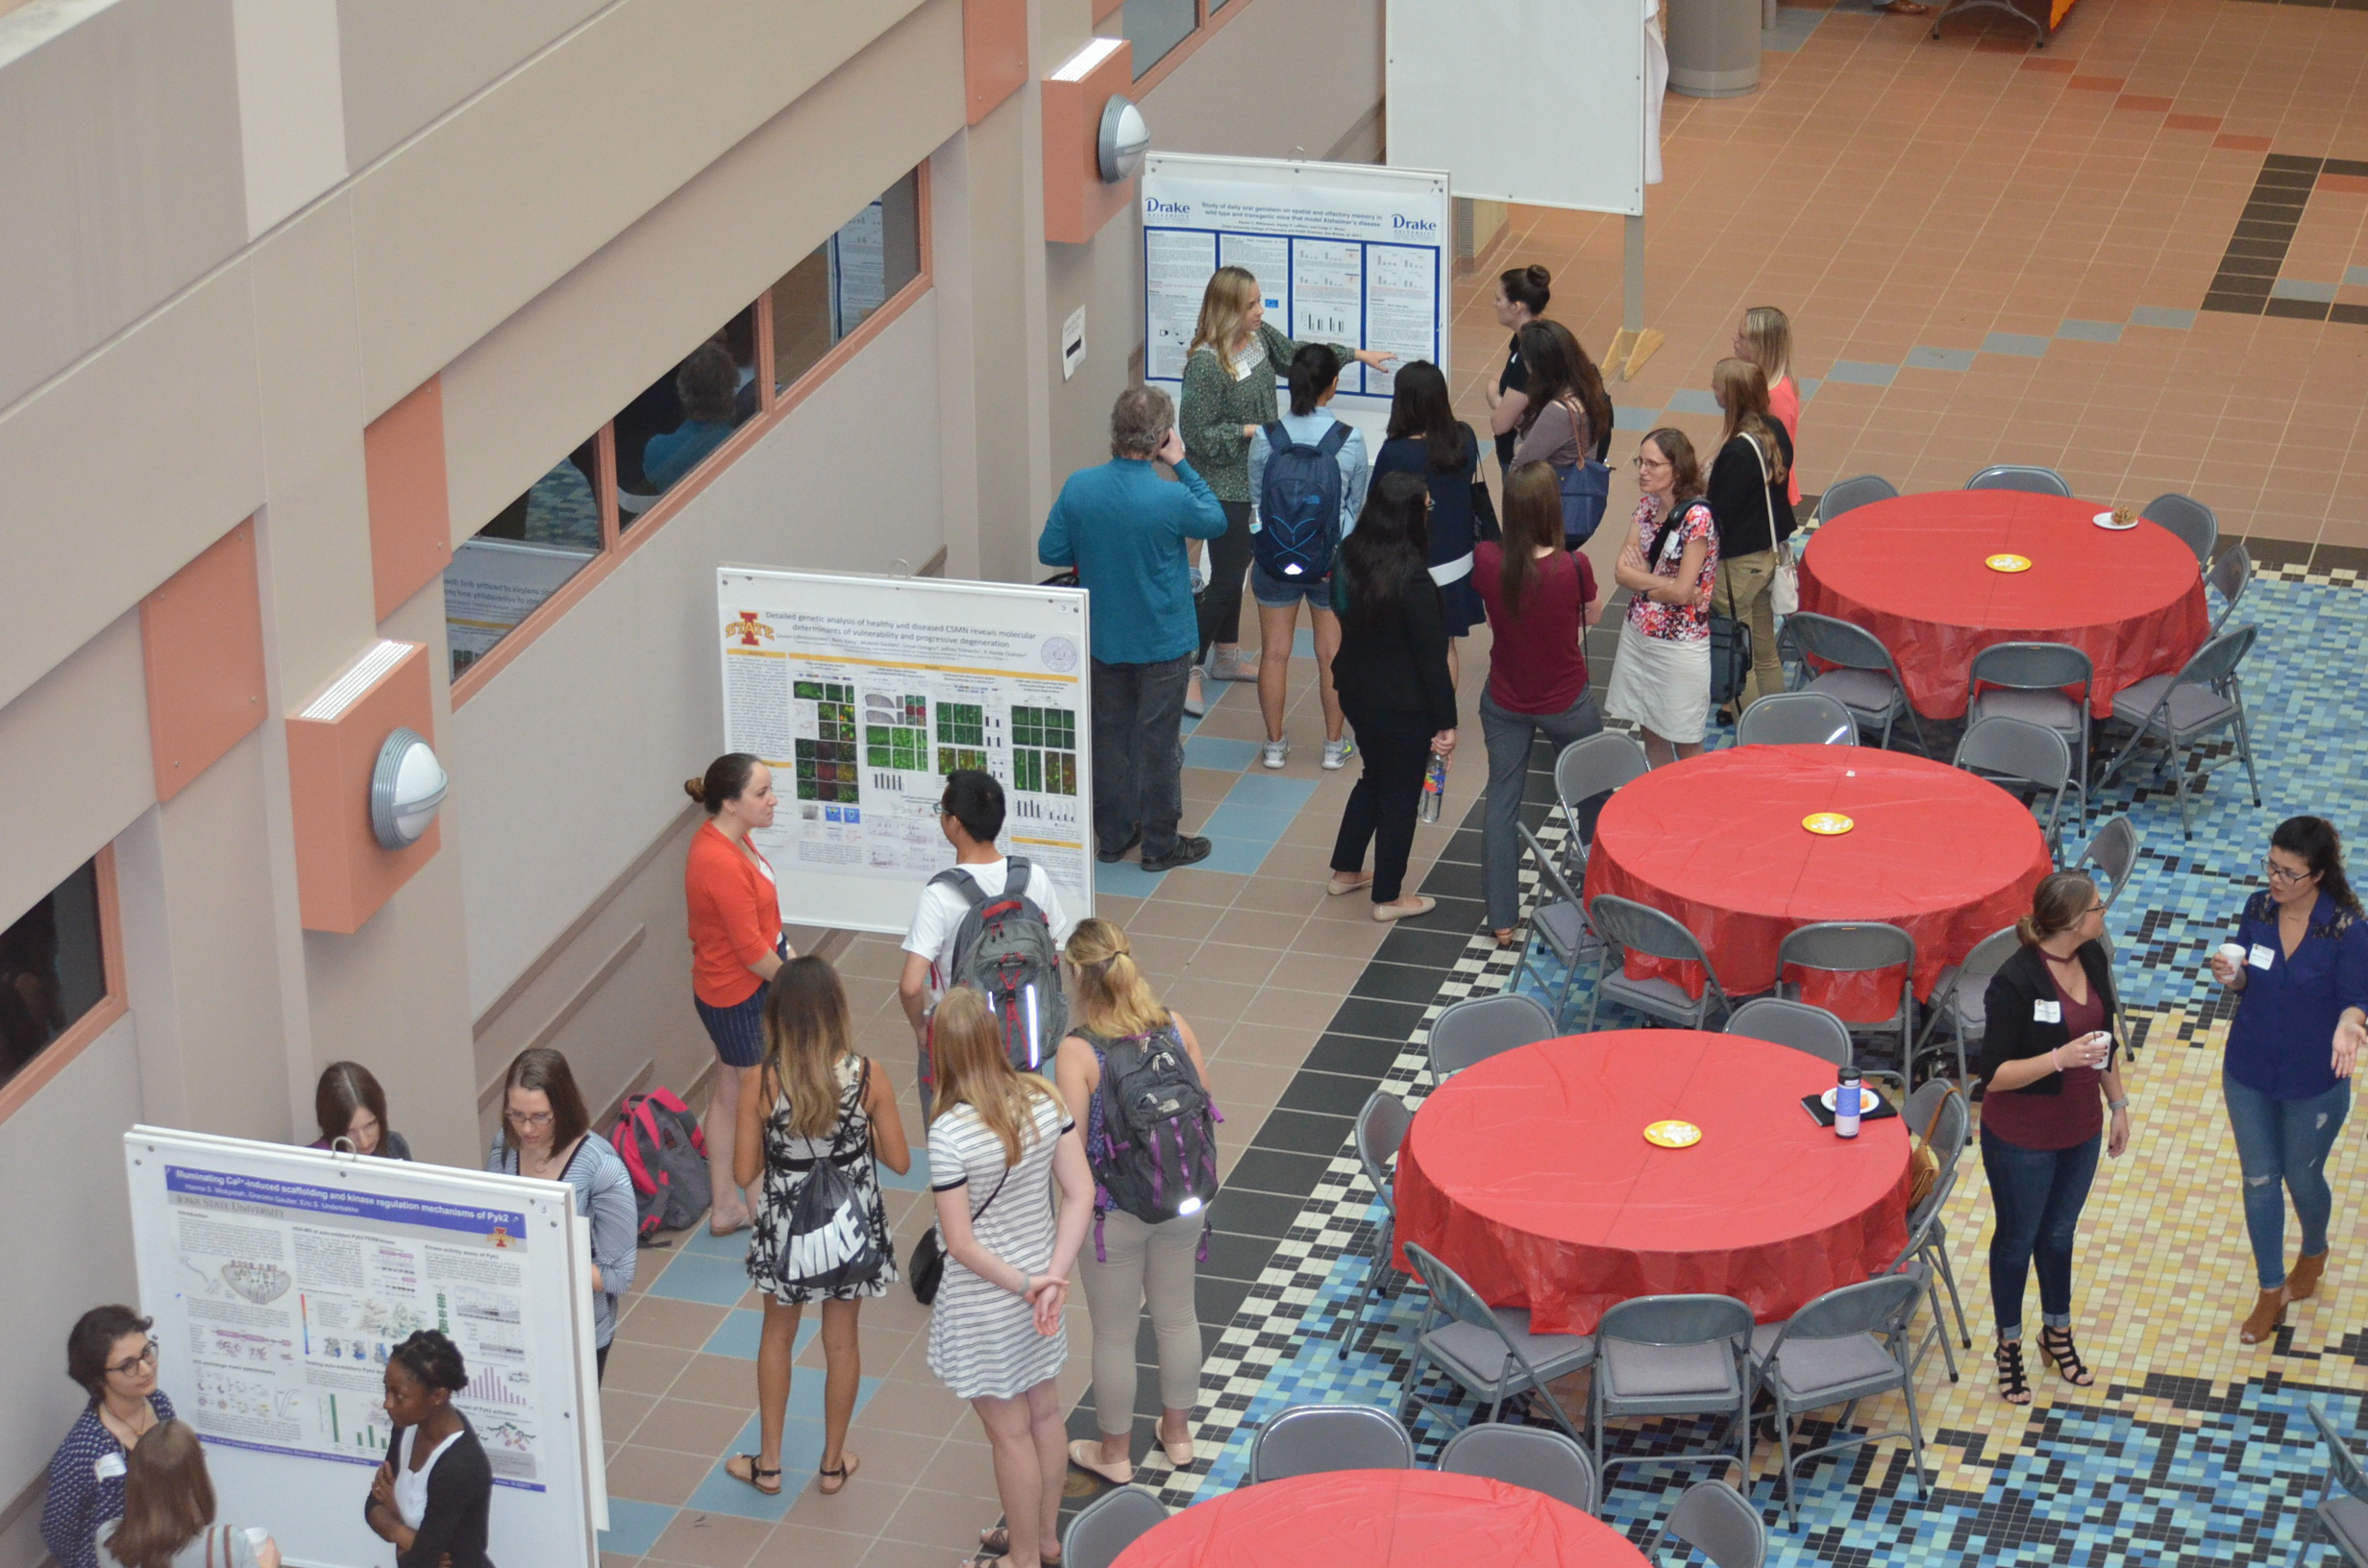 Neuroscience Research Day brought together students across Iowa State and from surrounding colleges with an interest in neuroscience research.